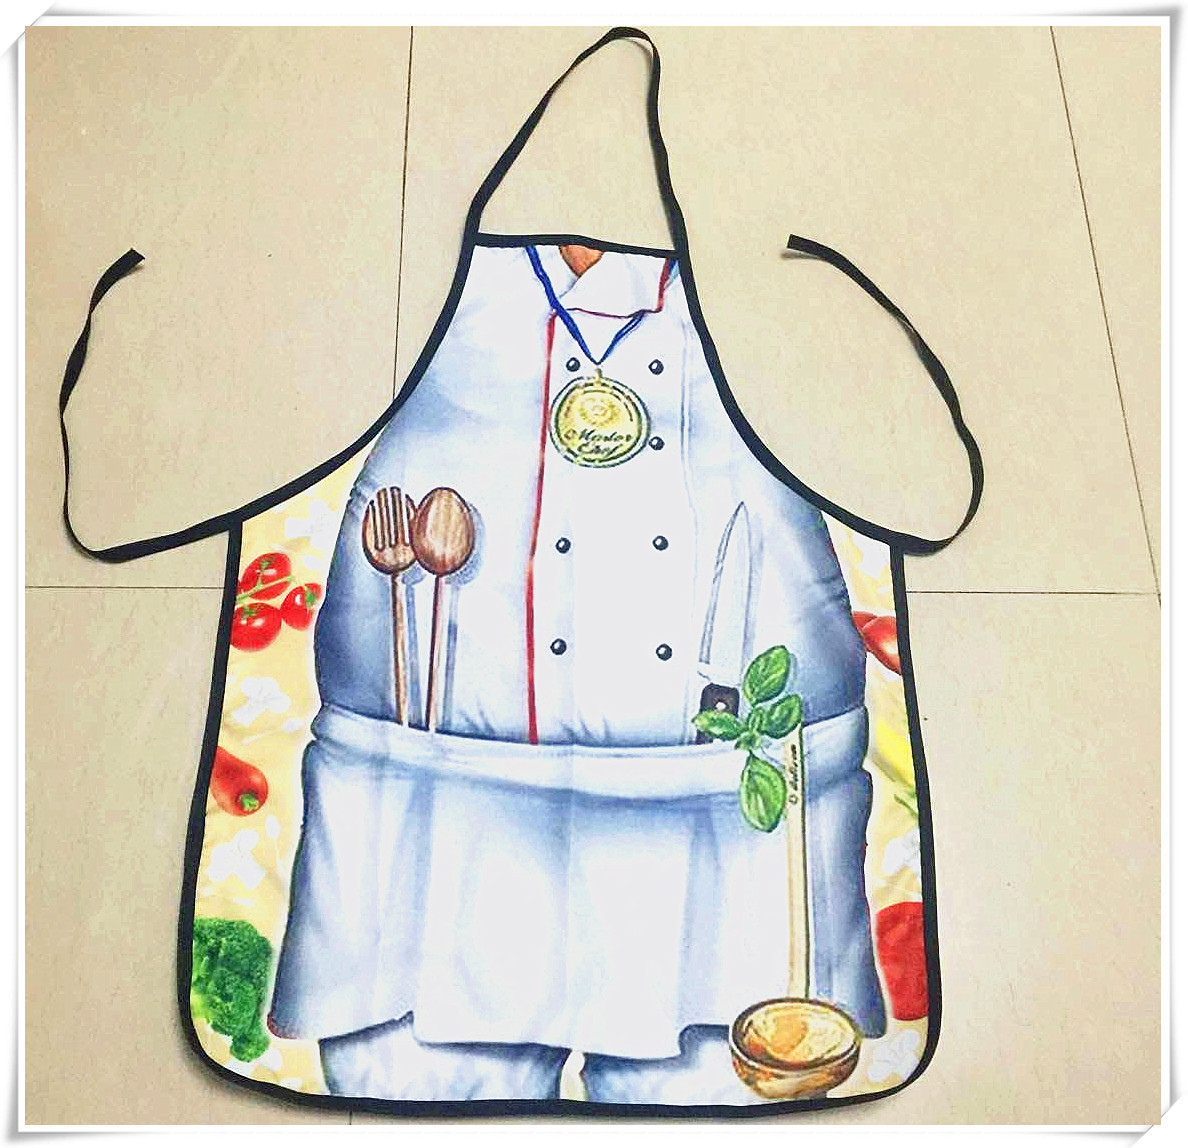 1Pcs BBQ Apron DIY Outdoor Barbecue Accessorie Polyester Lovely Printed Kitchen Cooking Home White Cook 73cm/28.4x57cm/22.2